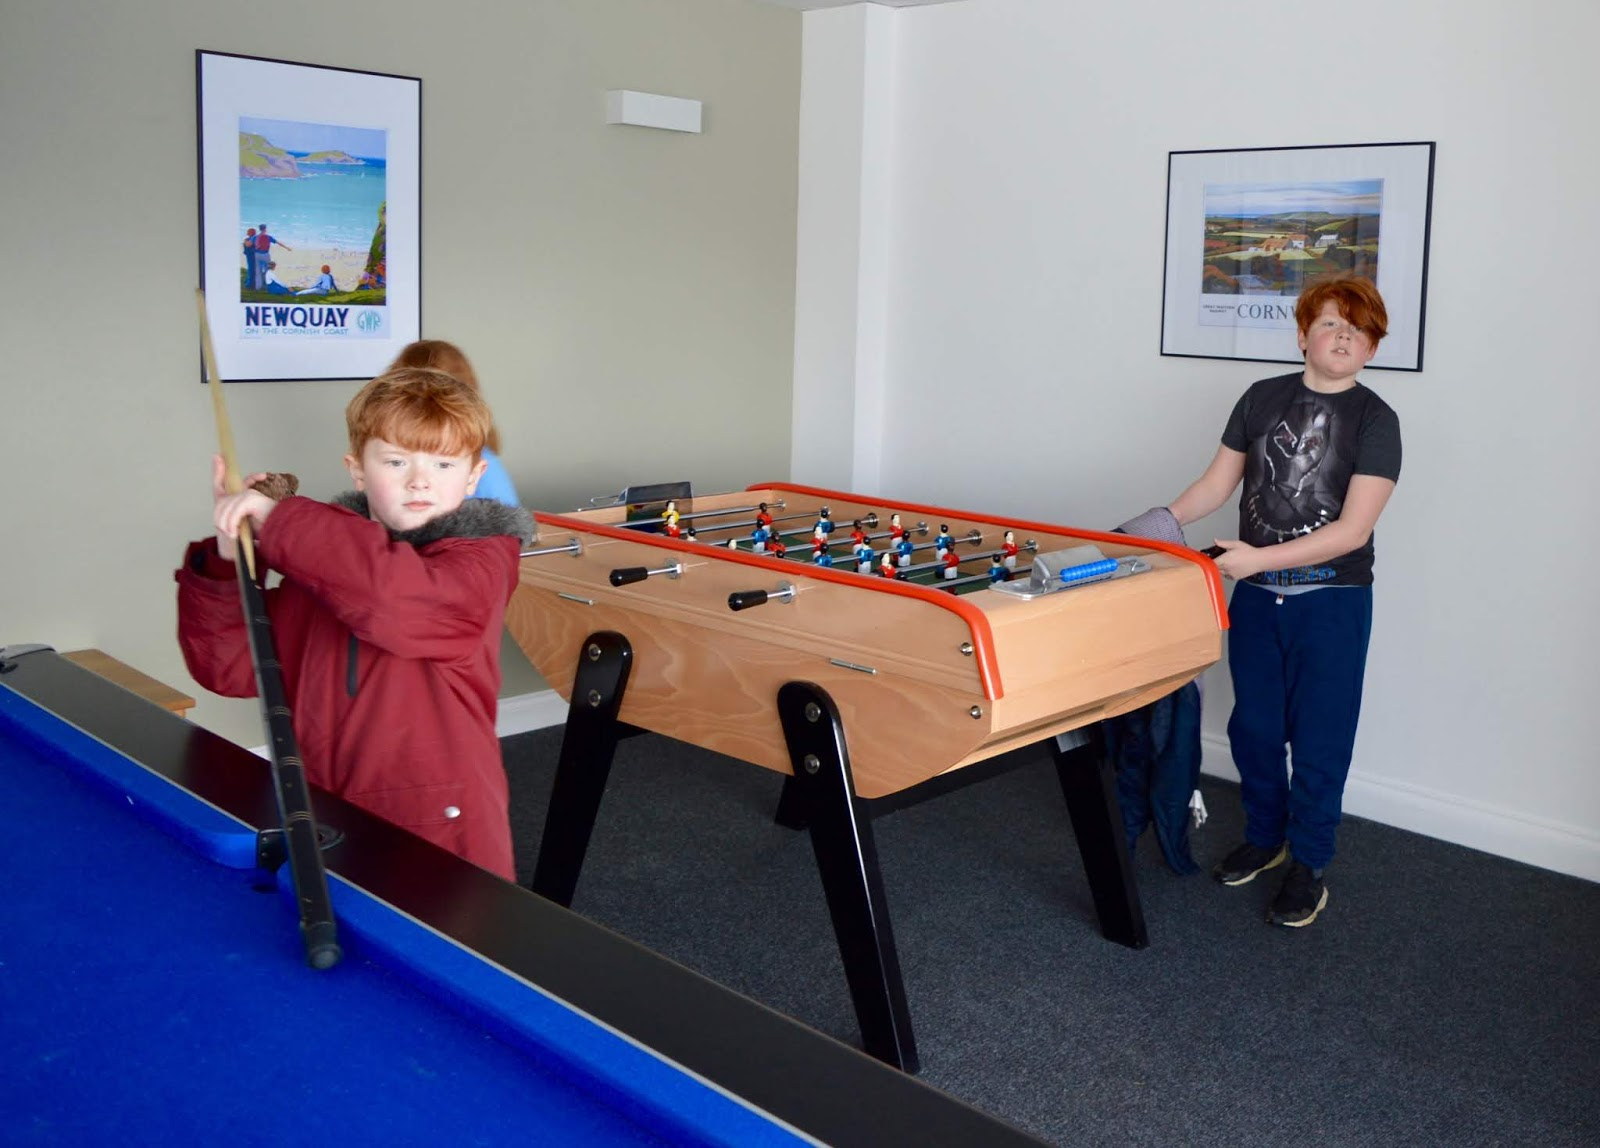 Waterside Cornwall Review | Self-Catering Lodges Near The Eden Project - indoor games room